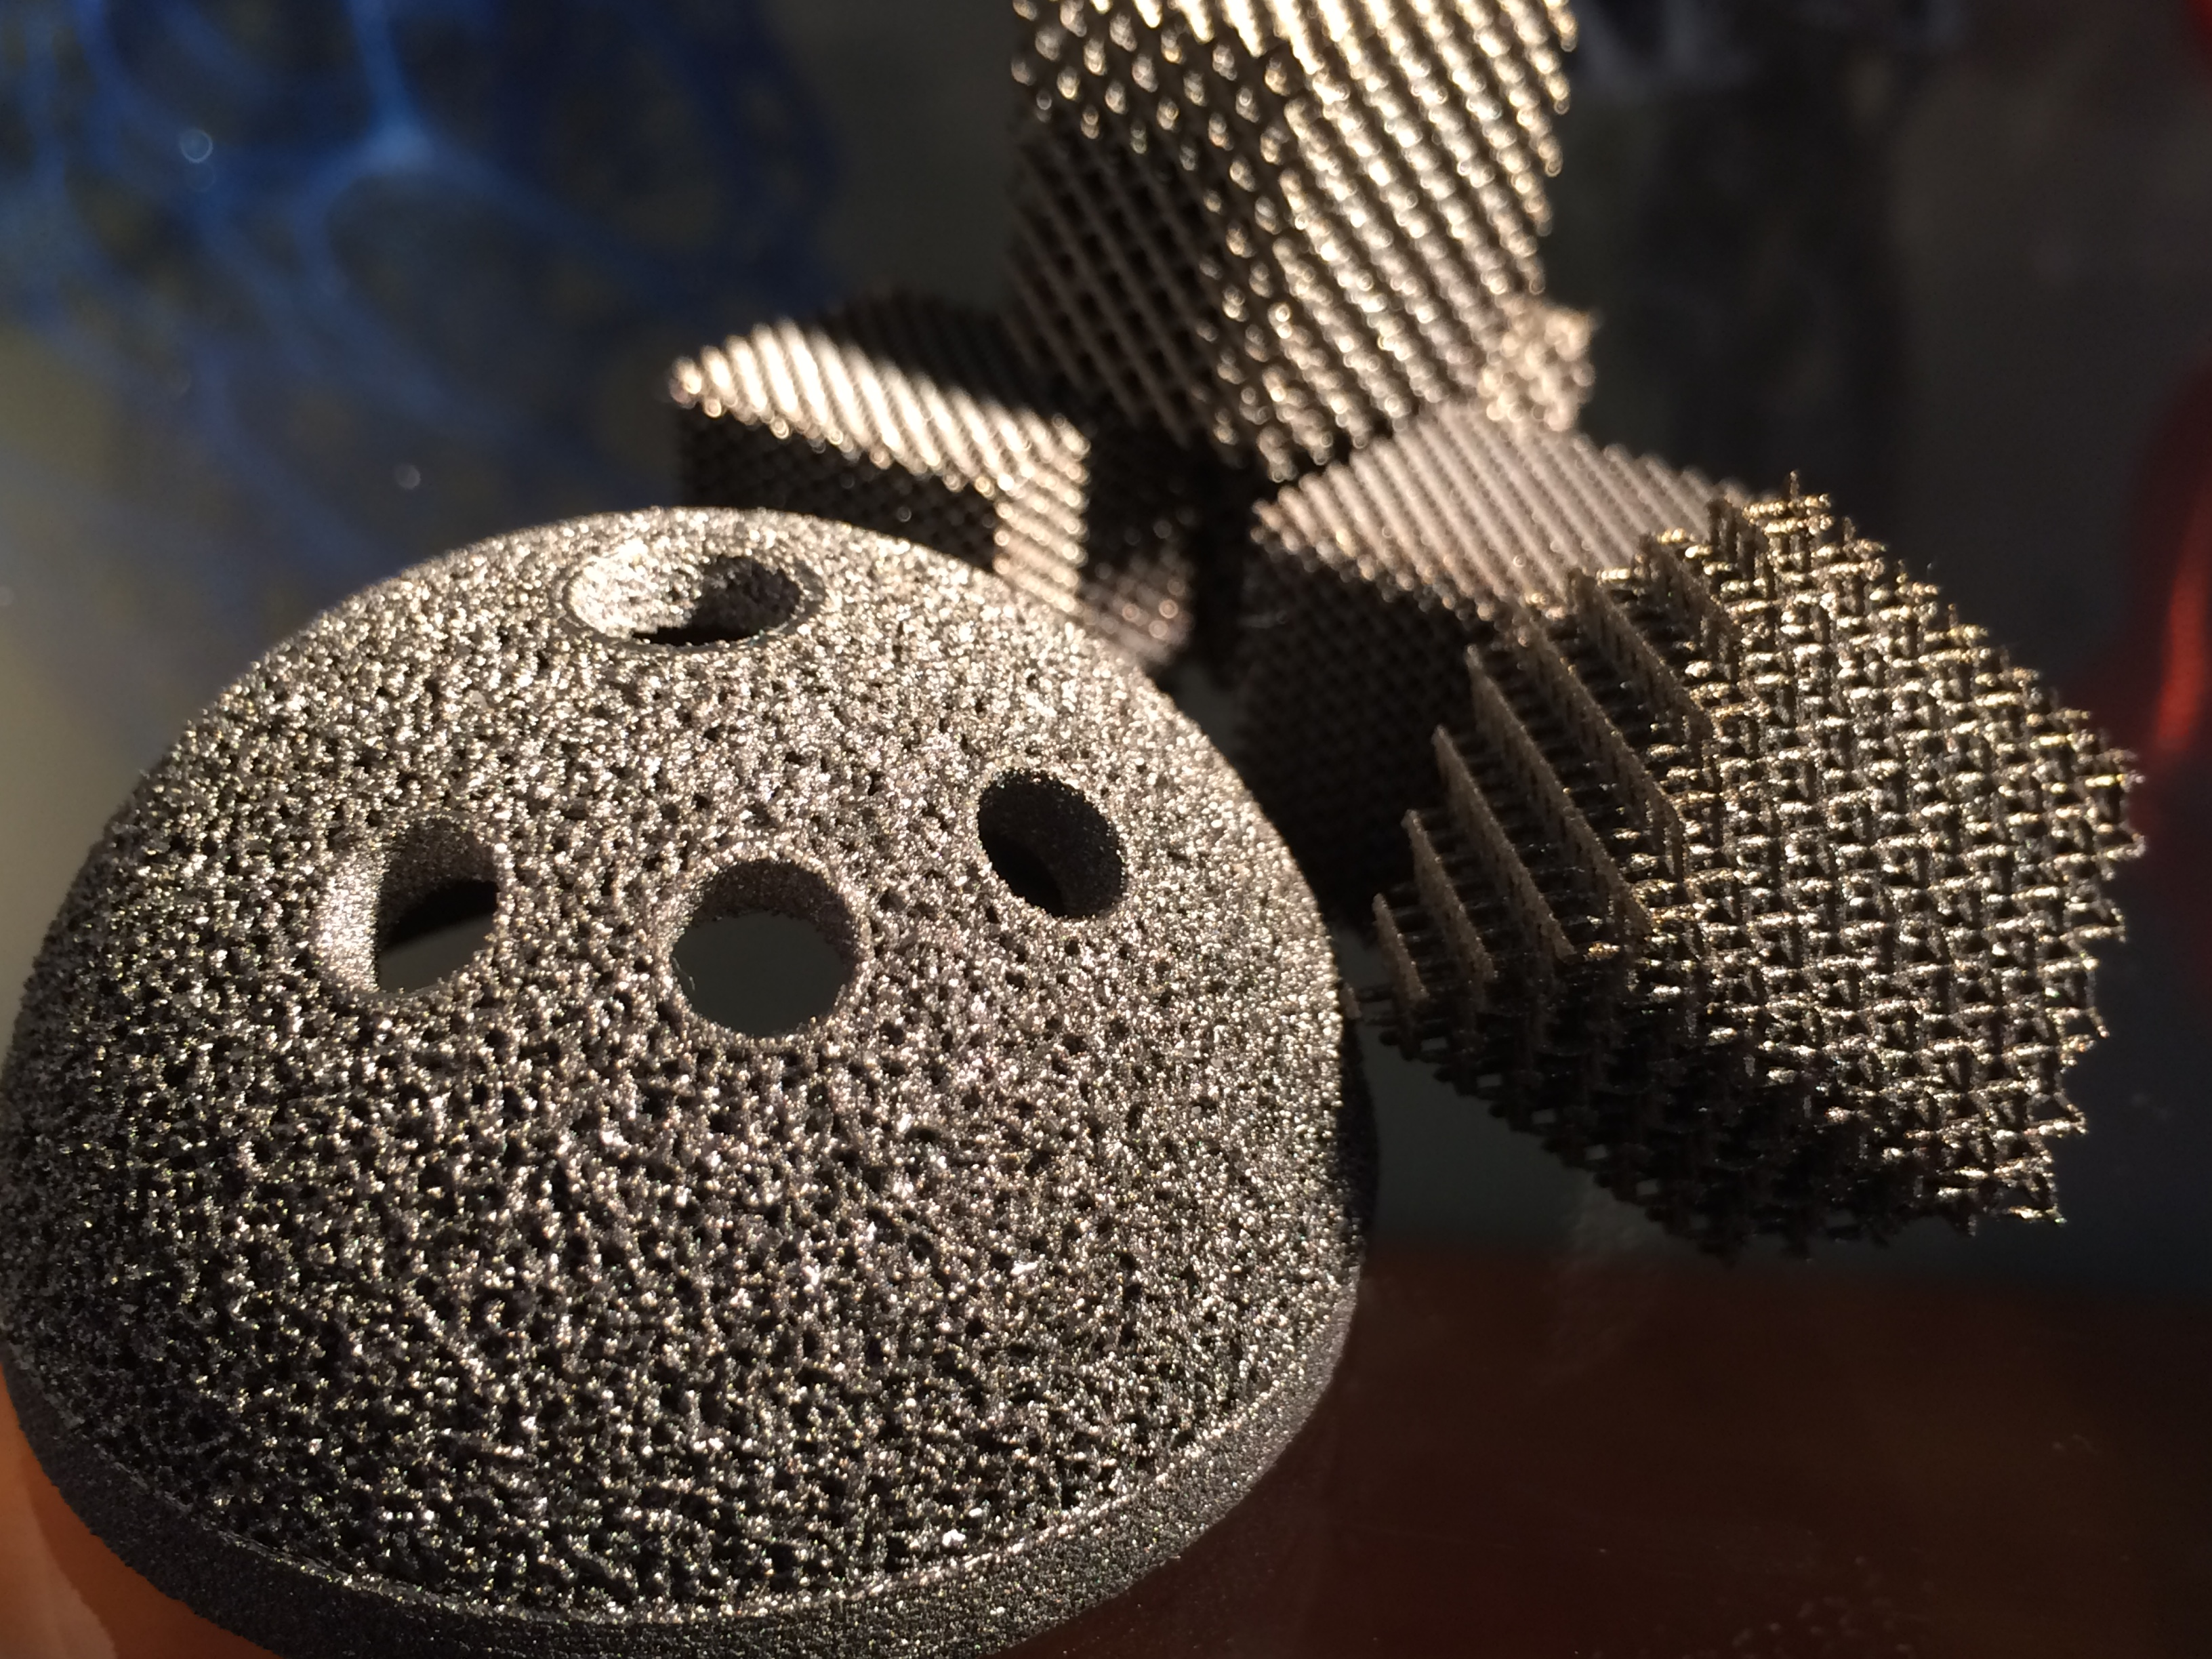 The making of a 3D-printed orthopedic Implant